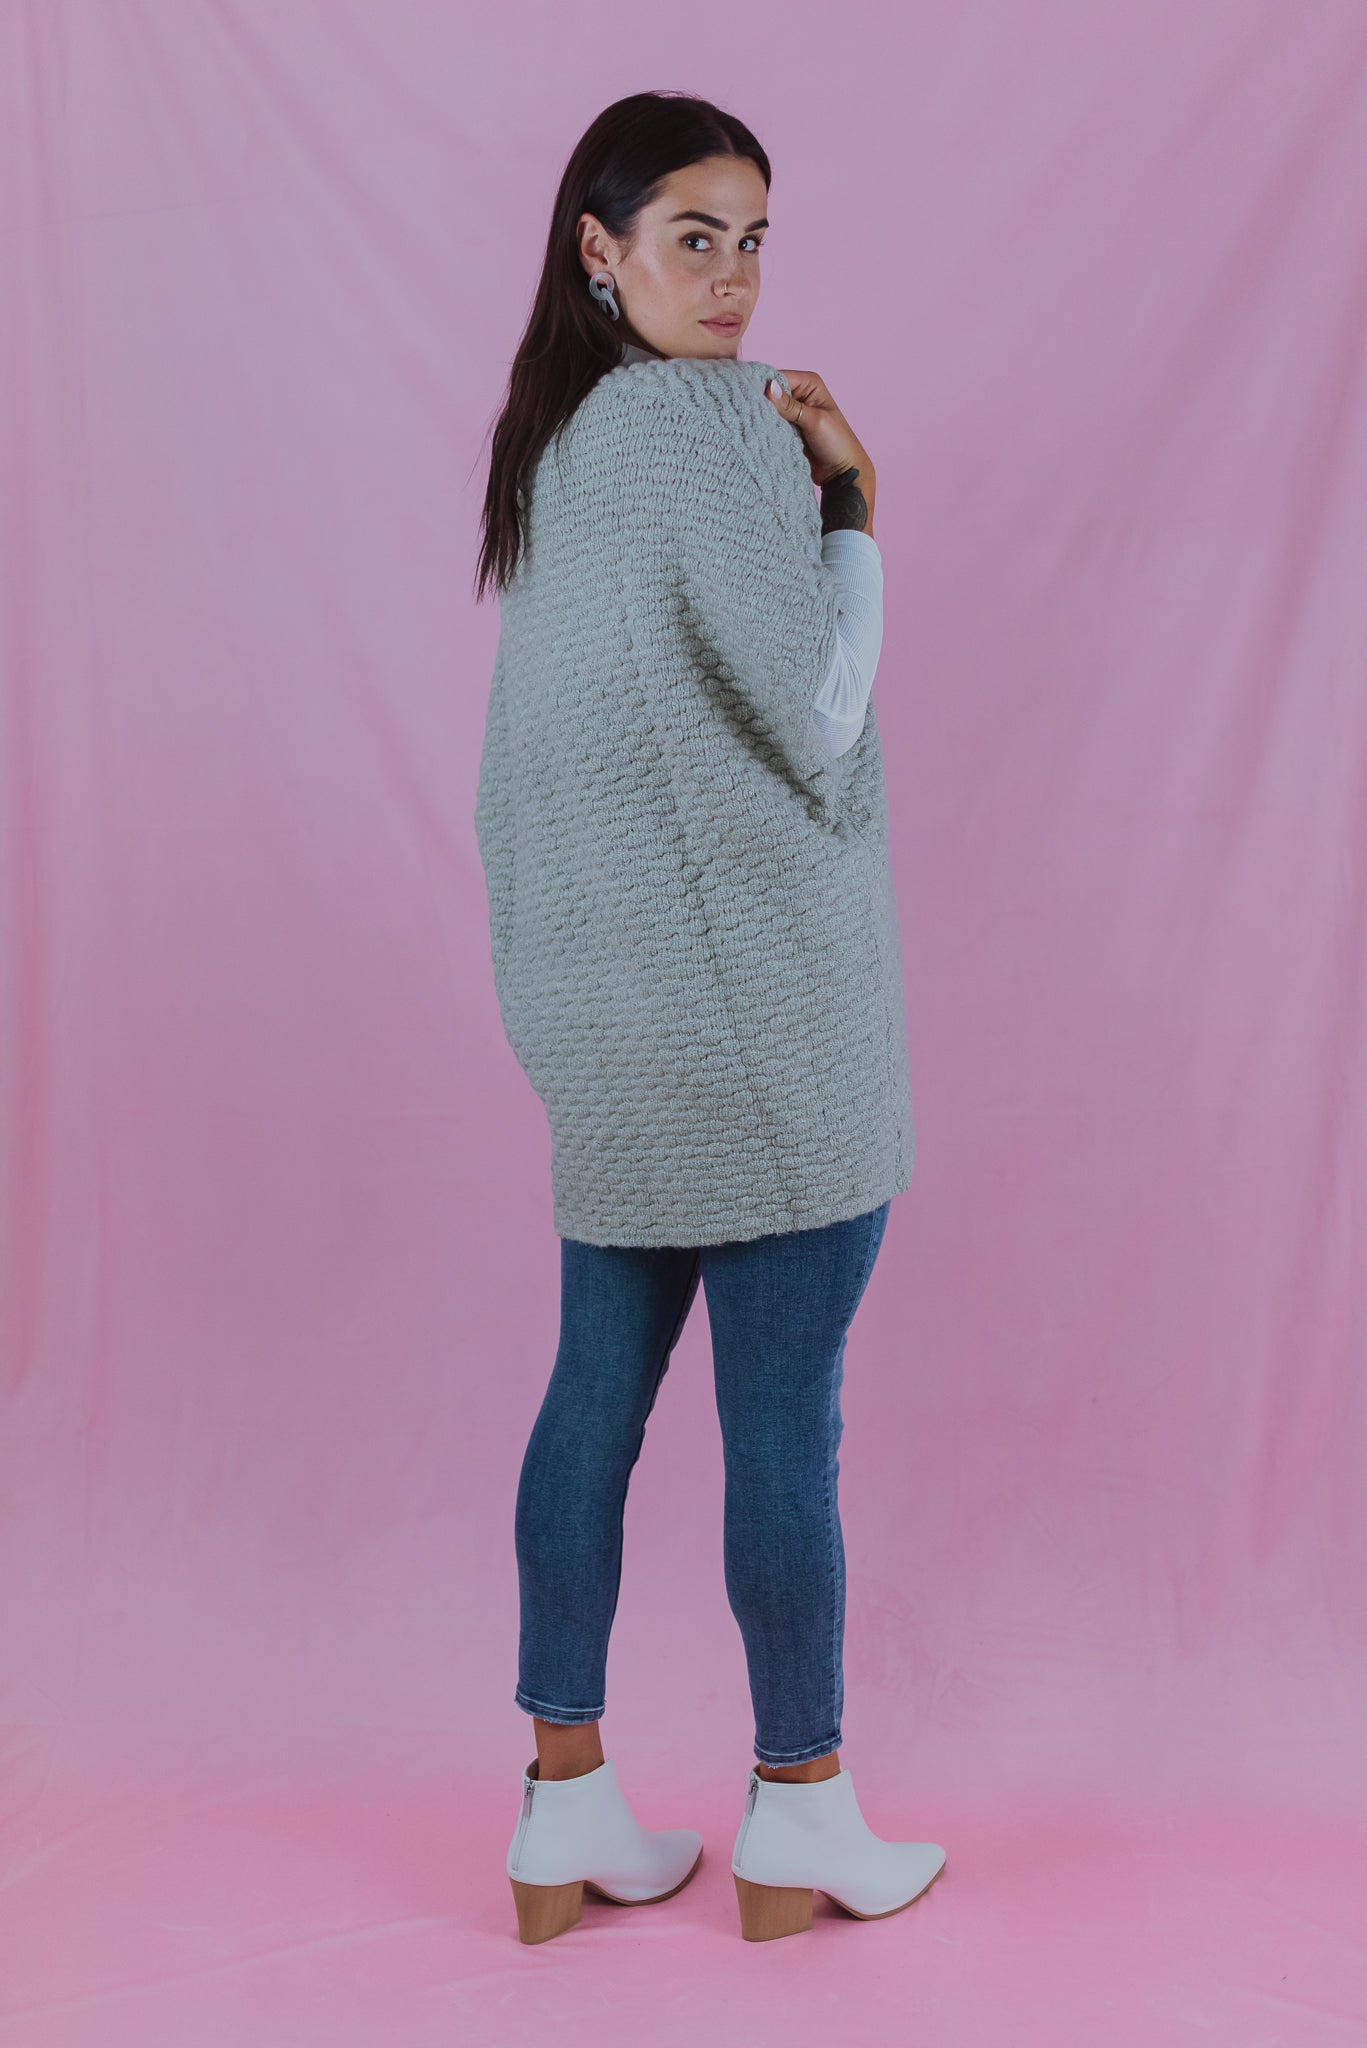 Cuddle Weather Cocoon Cardigan